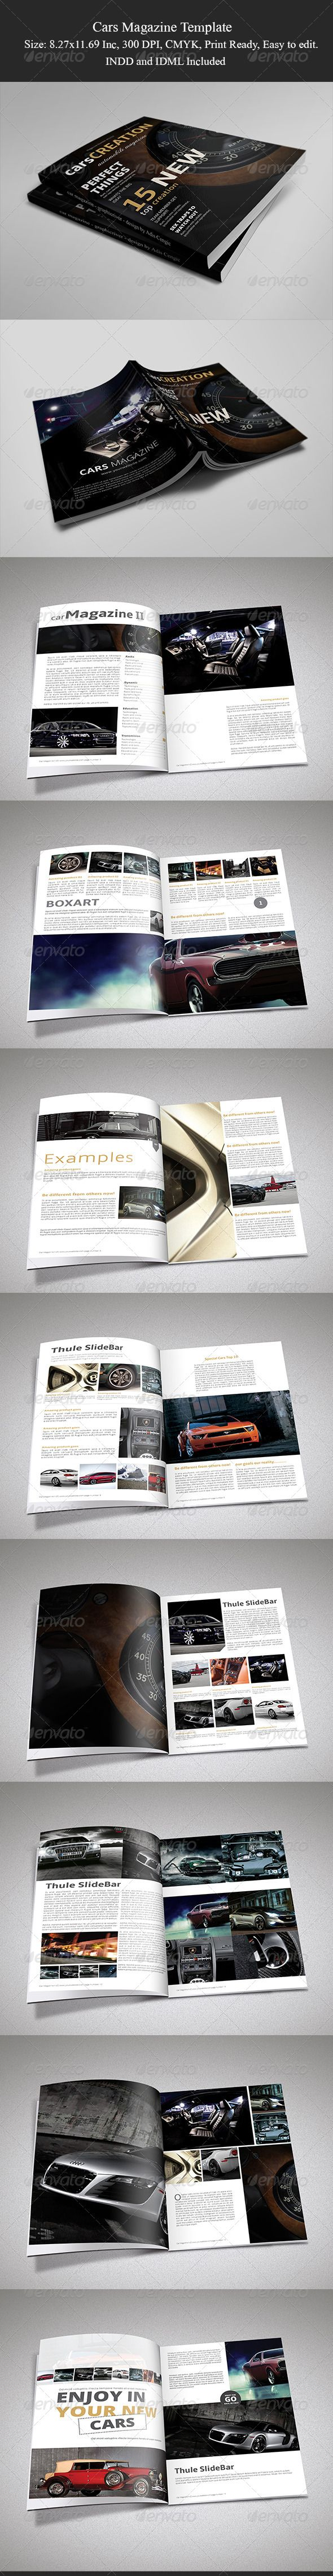 Cars Magazine Template II